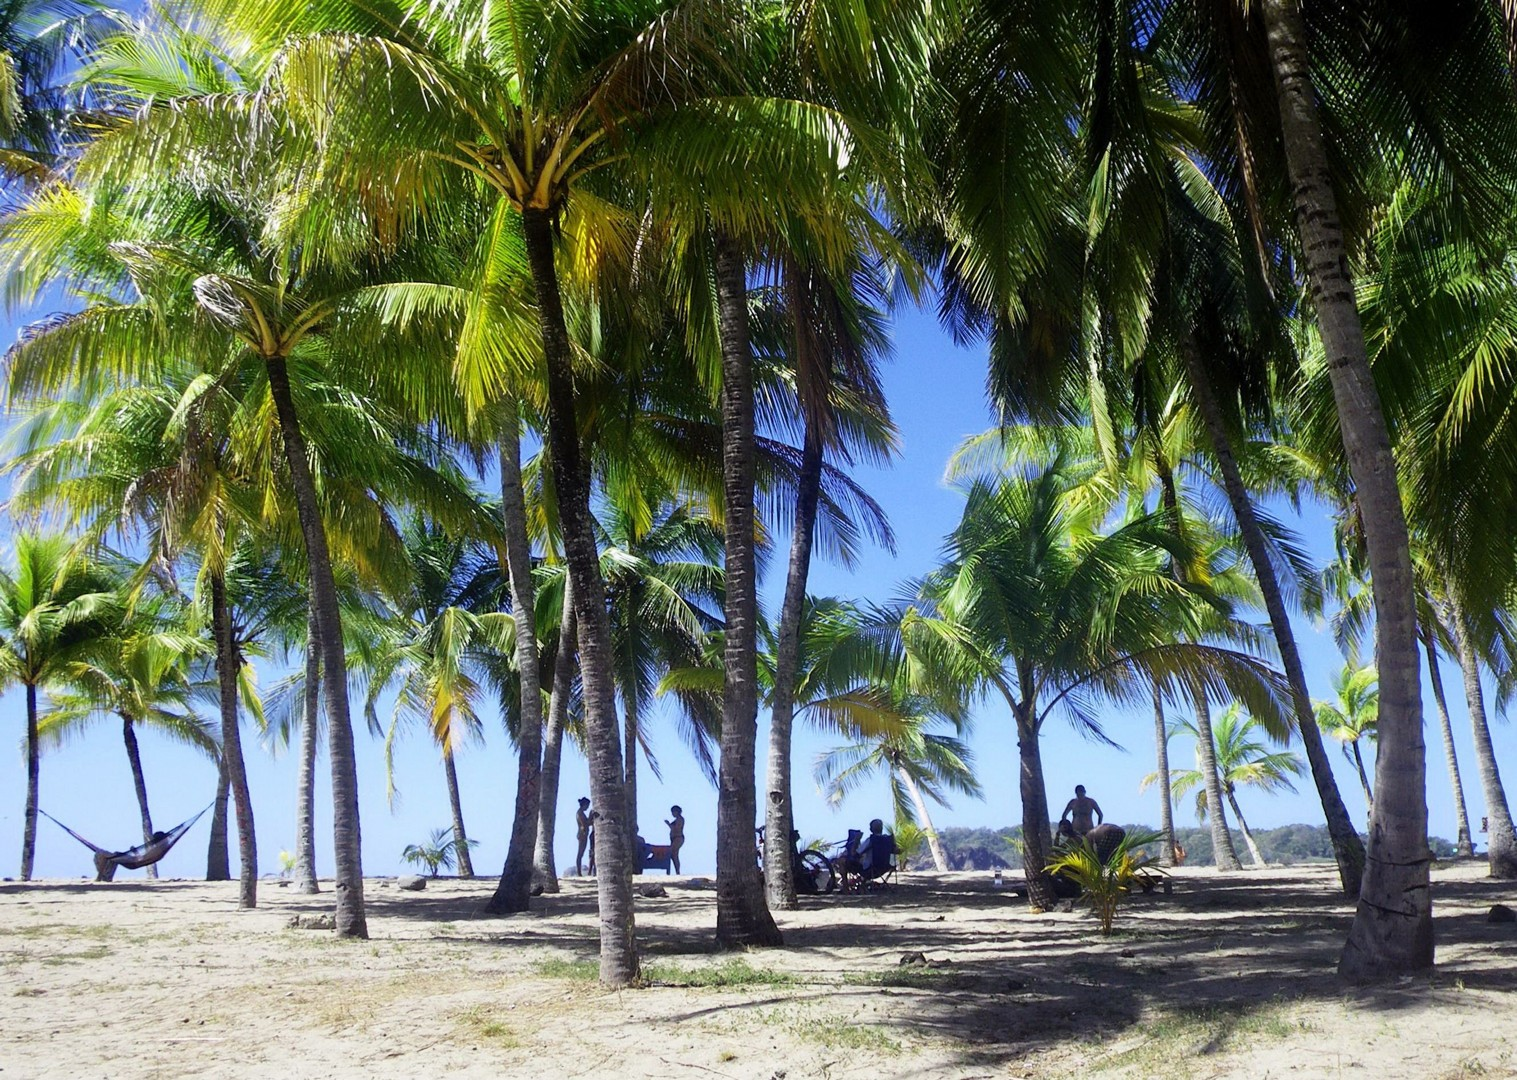 costa-rica-beach-central-america-family-cycling-holiday.jpg - Costa Rica - Volcanoes and Valleys - Family Cycling